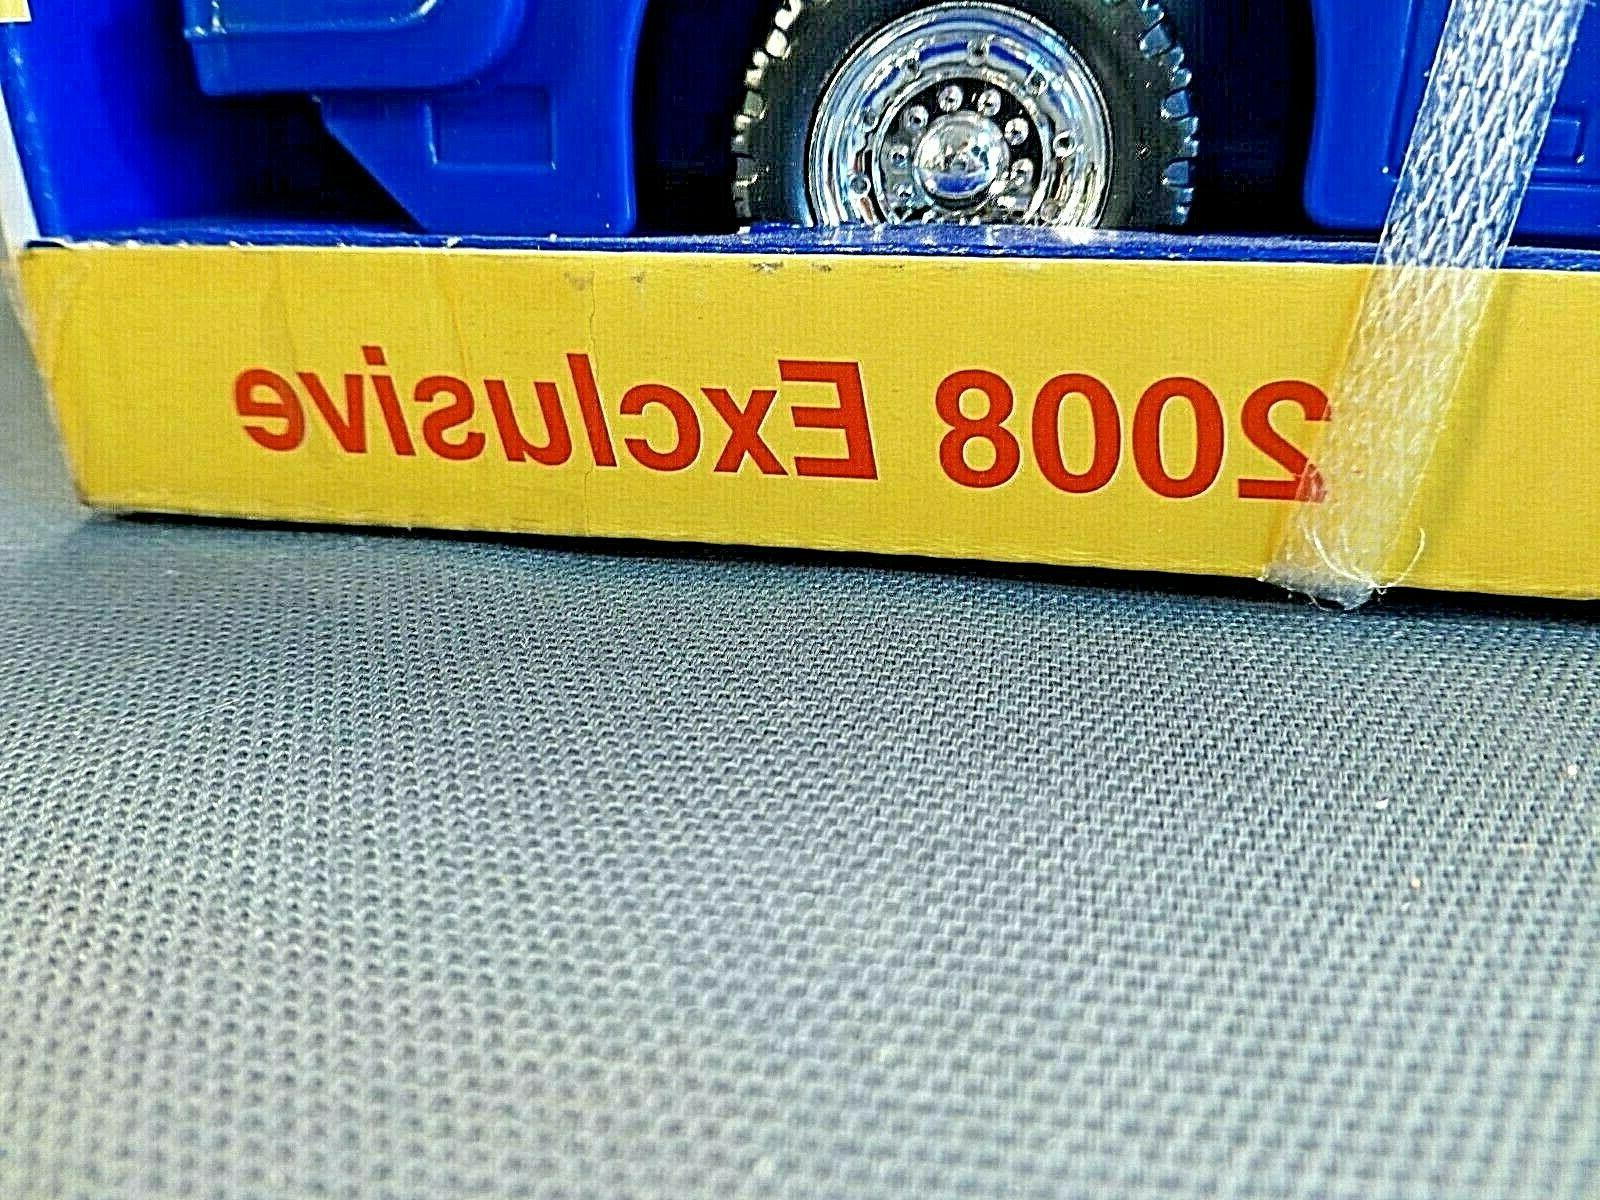 2008 Napa Auto Ron Capps Stamped Funny Car Transporter New